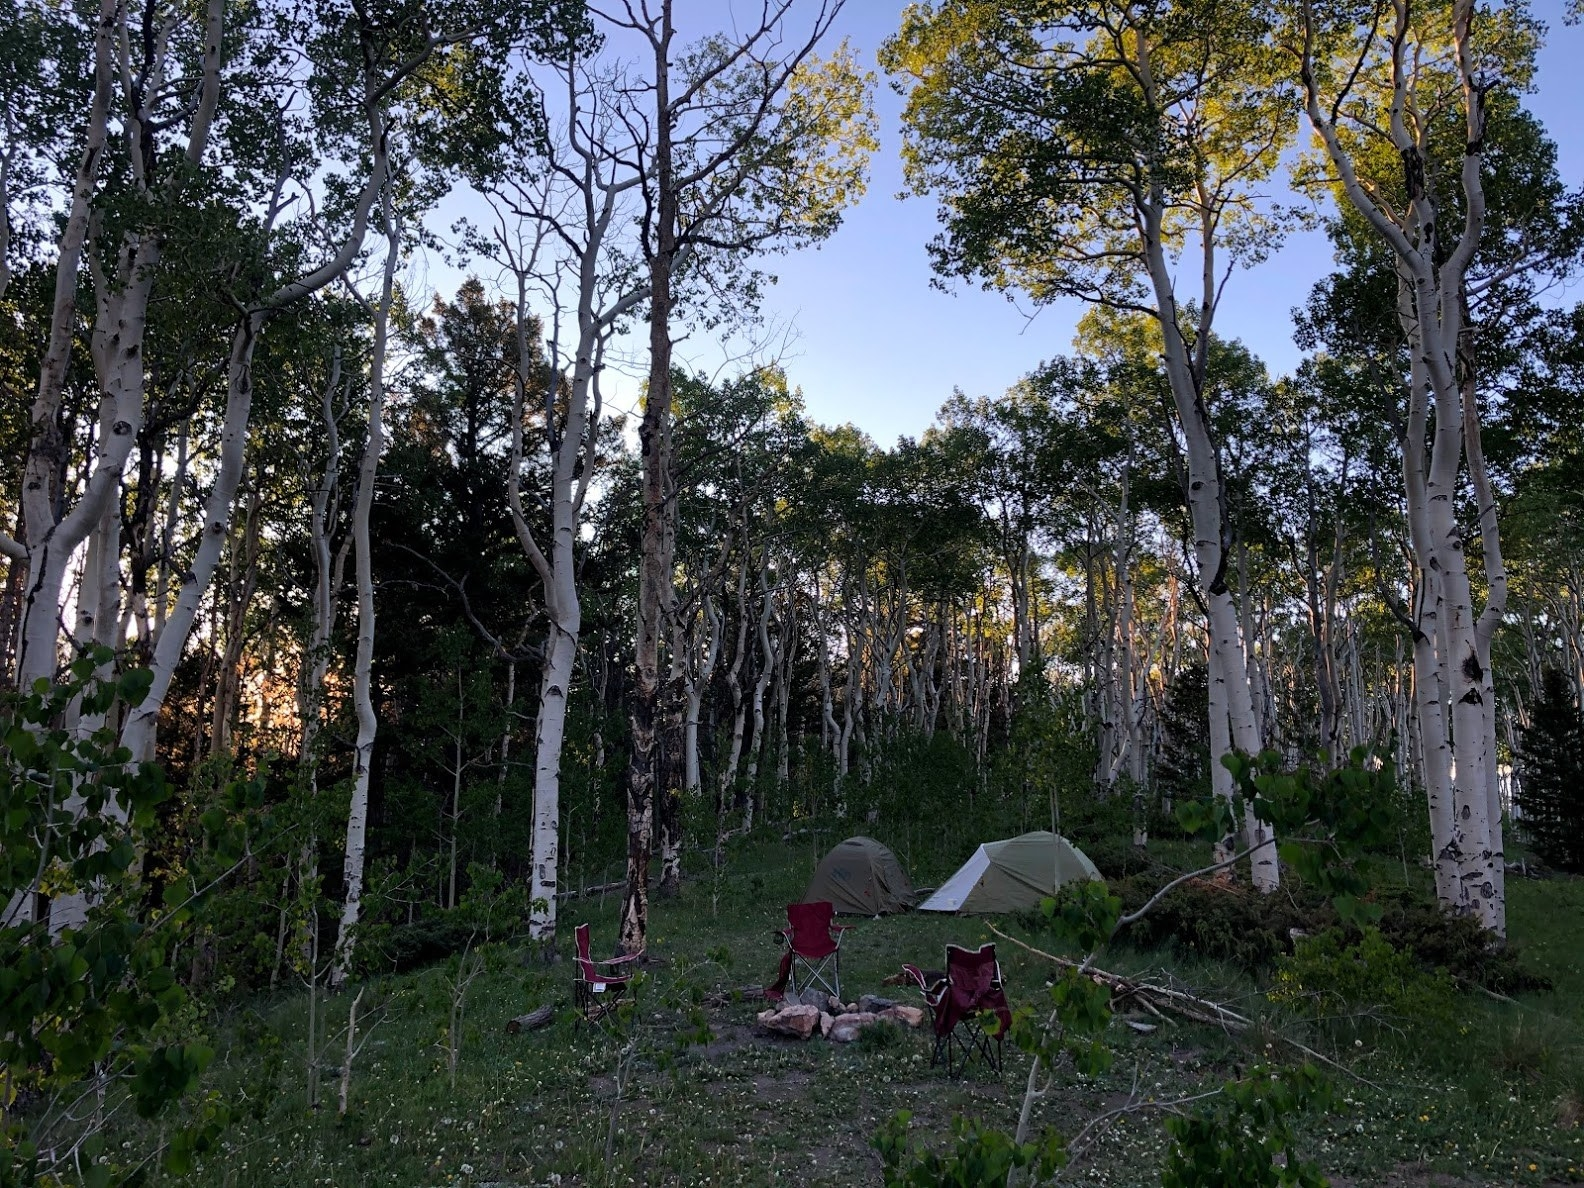 a two tents and camping chairs on a grassy patch of ground surrounded by trees